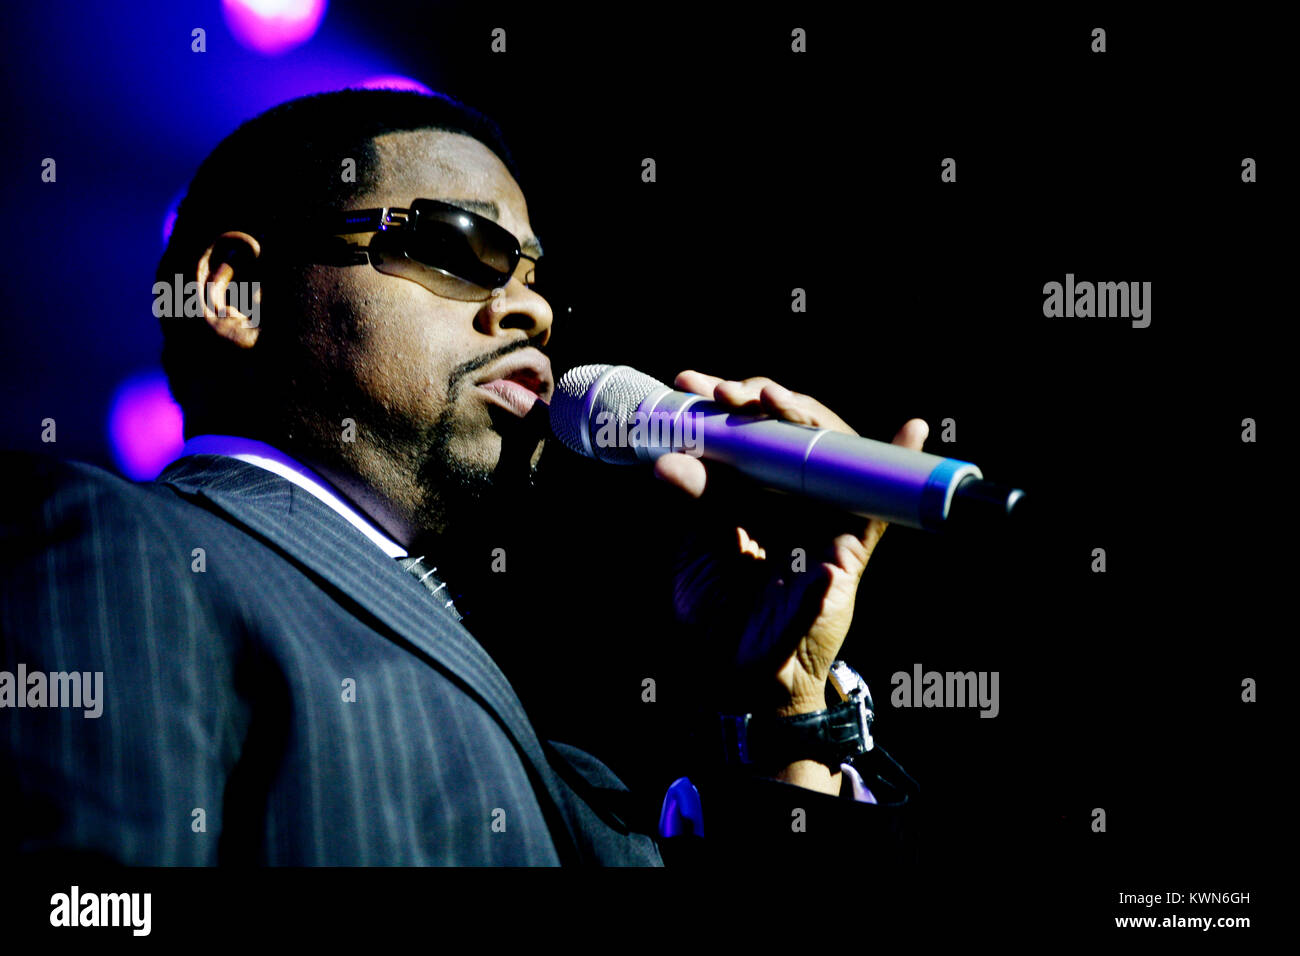 The American R&B and vocal group Boyz II Men performs a live concert at Vega in Copenhagen. Here singer Nathan - Stock Image